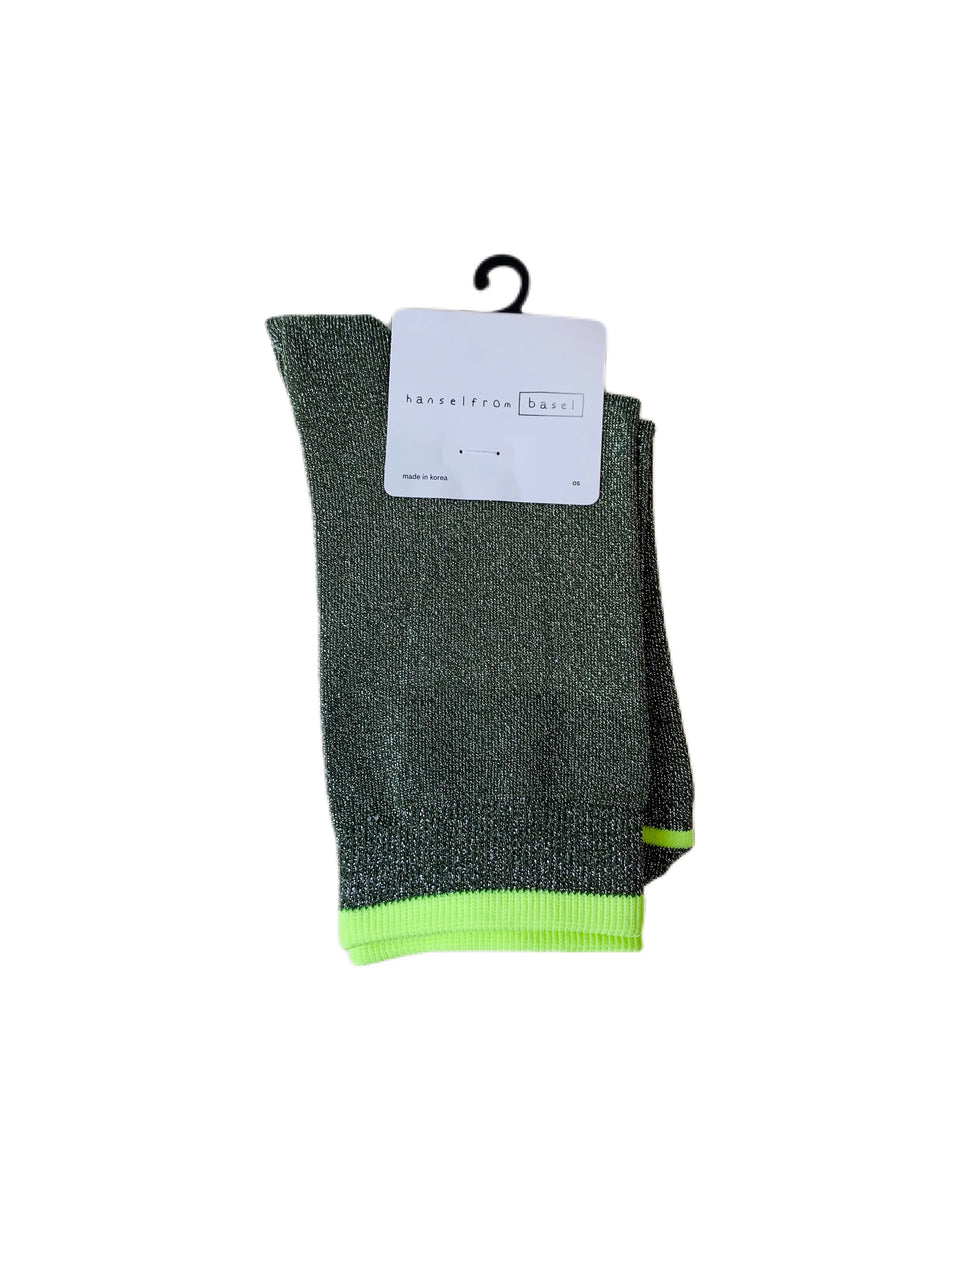 Hansel from Basel Shimmer Crew Stool Sock Green One Size Fits Most Pair Unisex